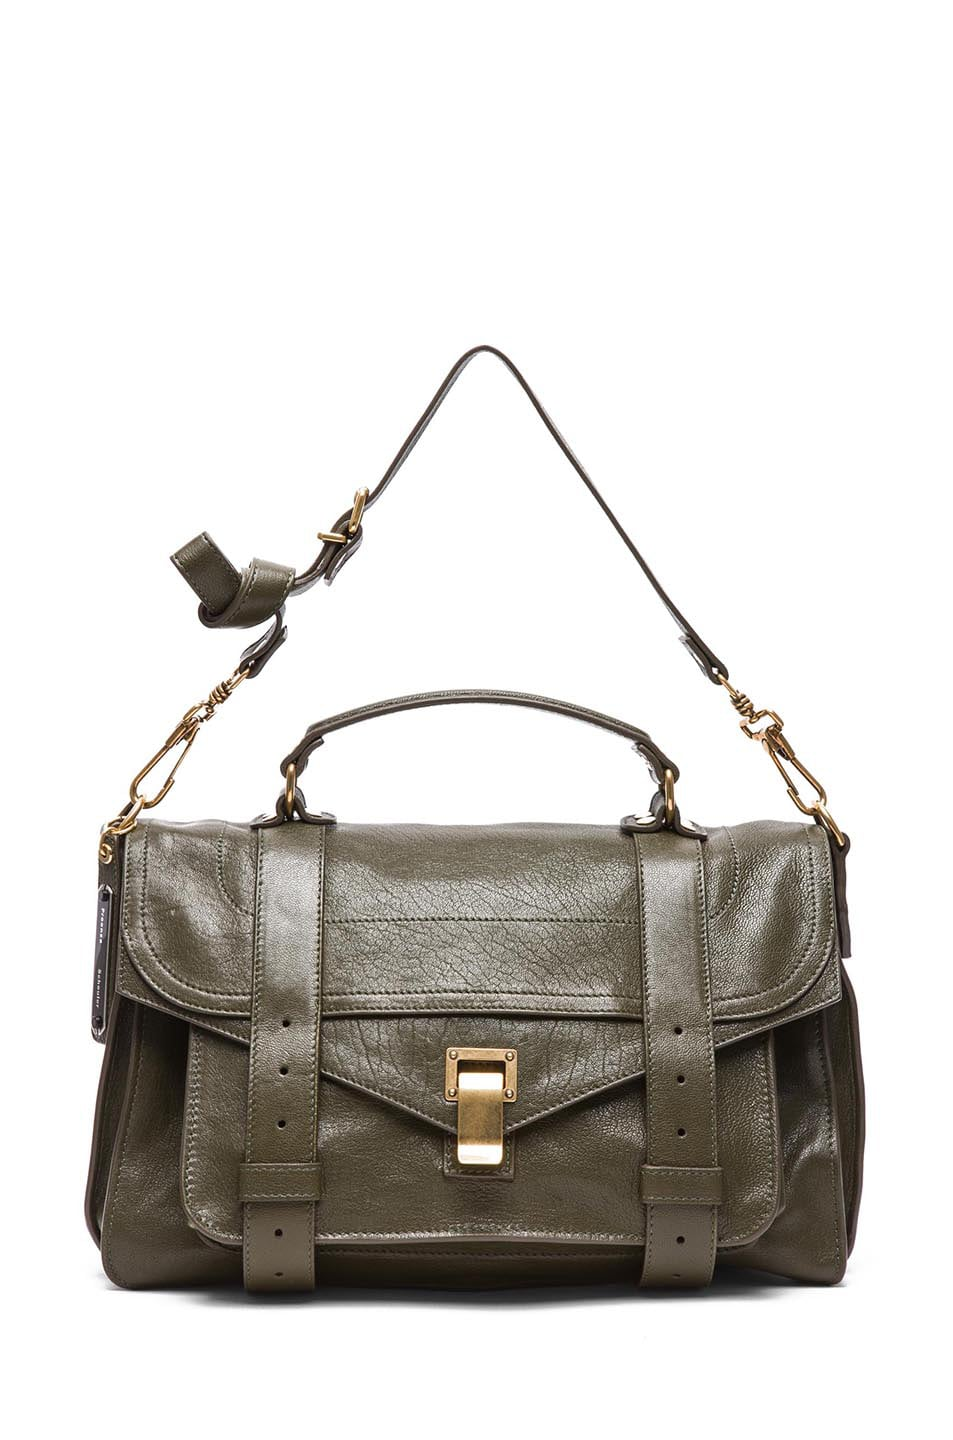 Image 5 of Proenza Schouler Medium PS1 Leather Satchel in Military